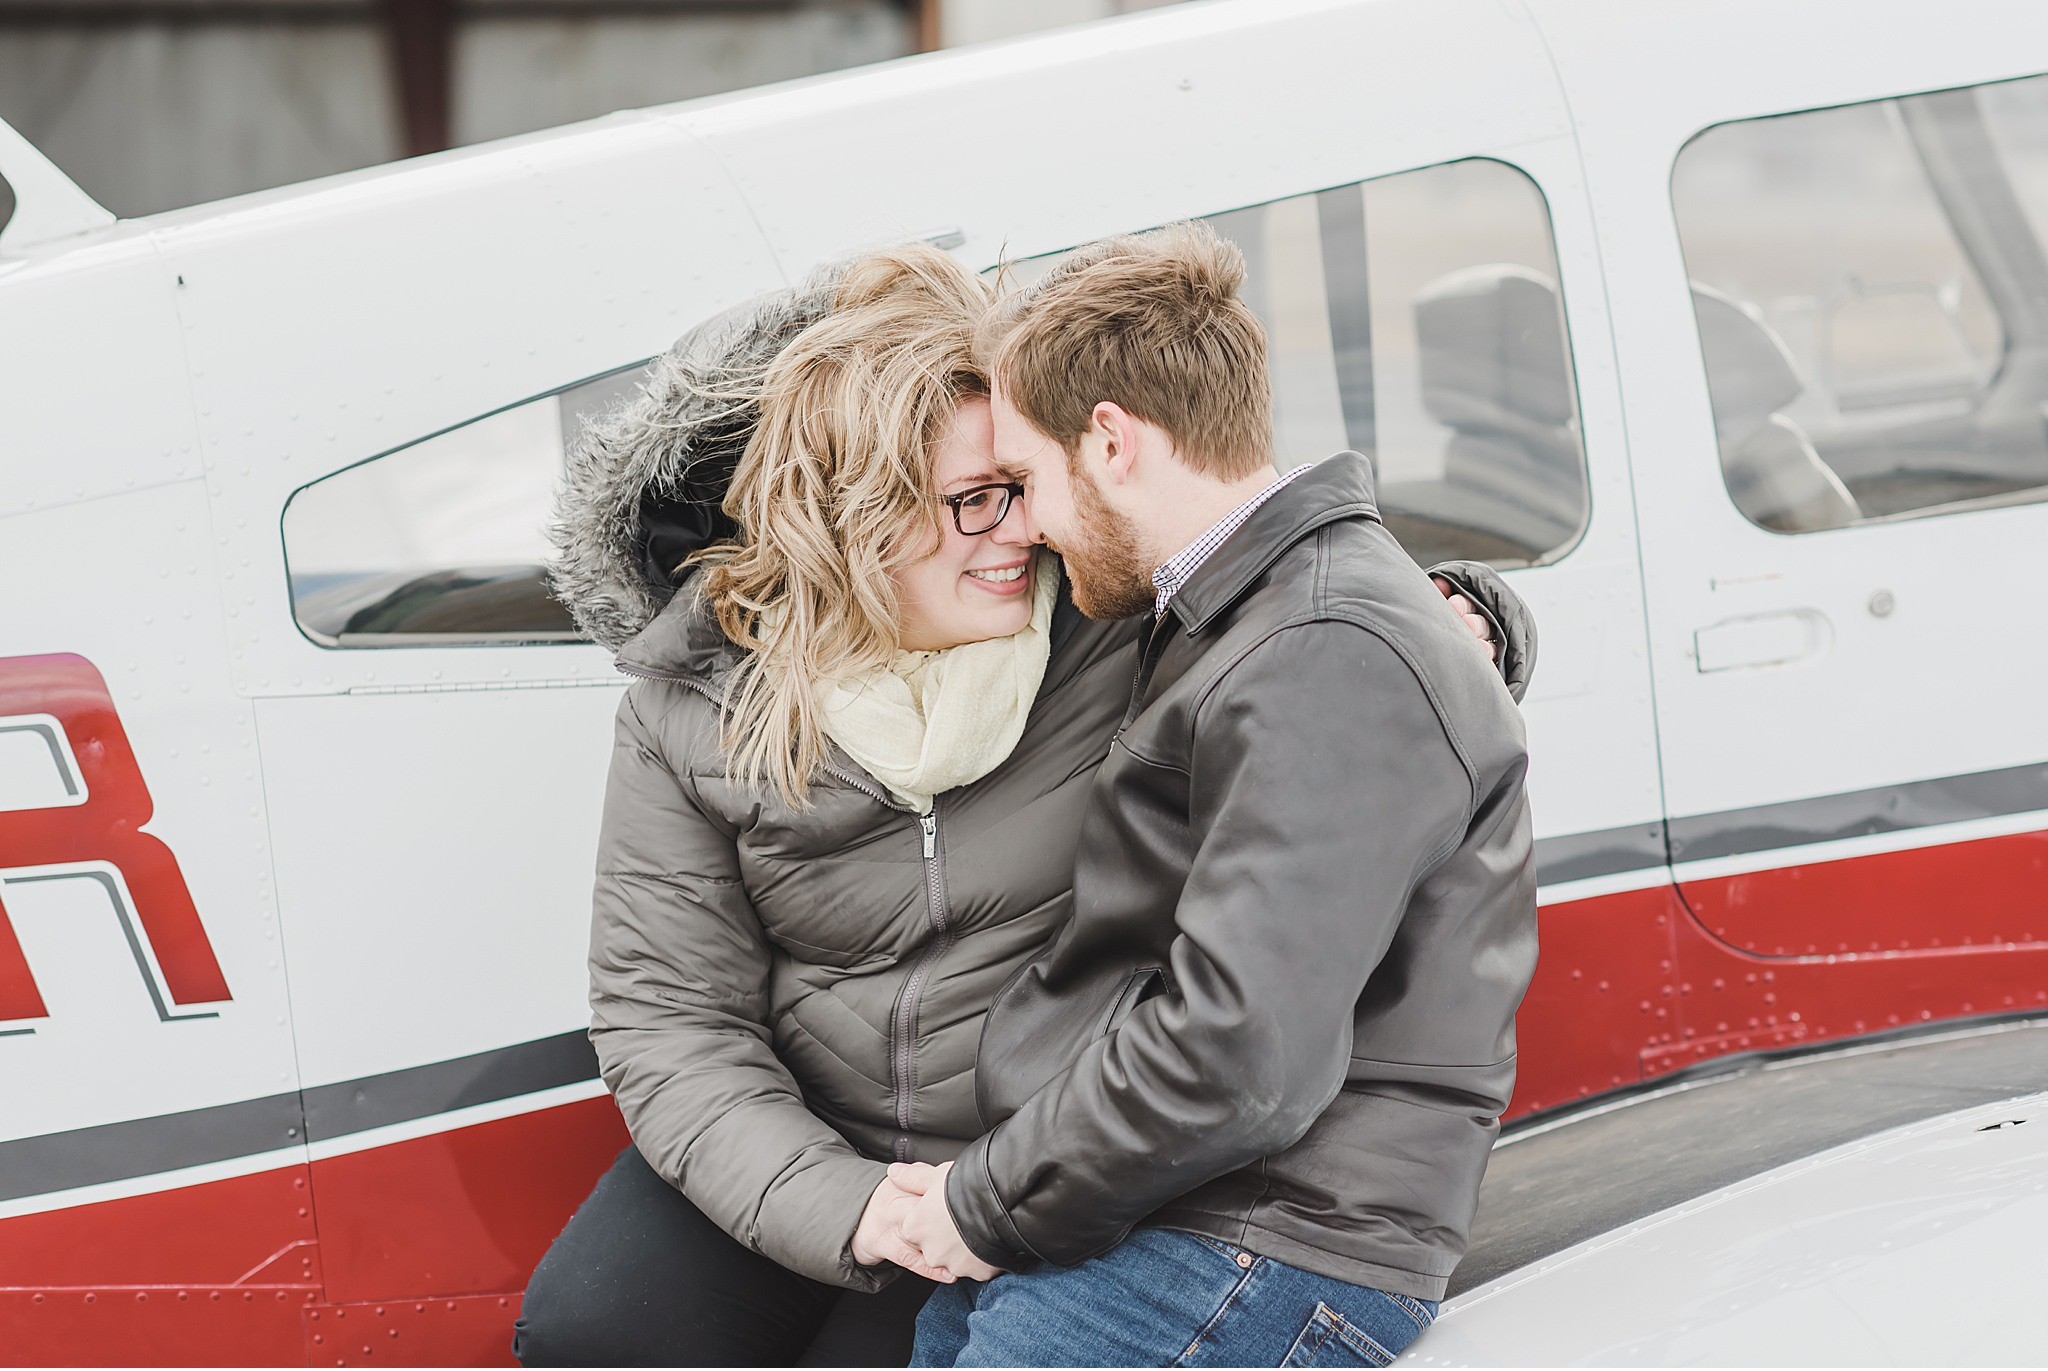 Lancaster airport Lititz Wedding photographer engagement session photo_2921.jpg